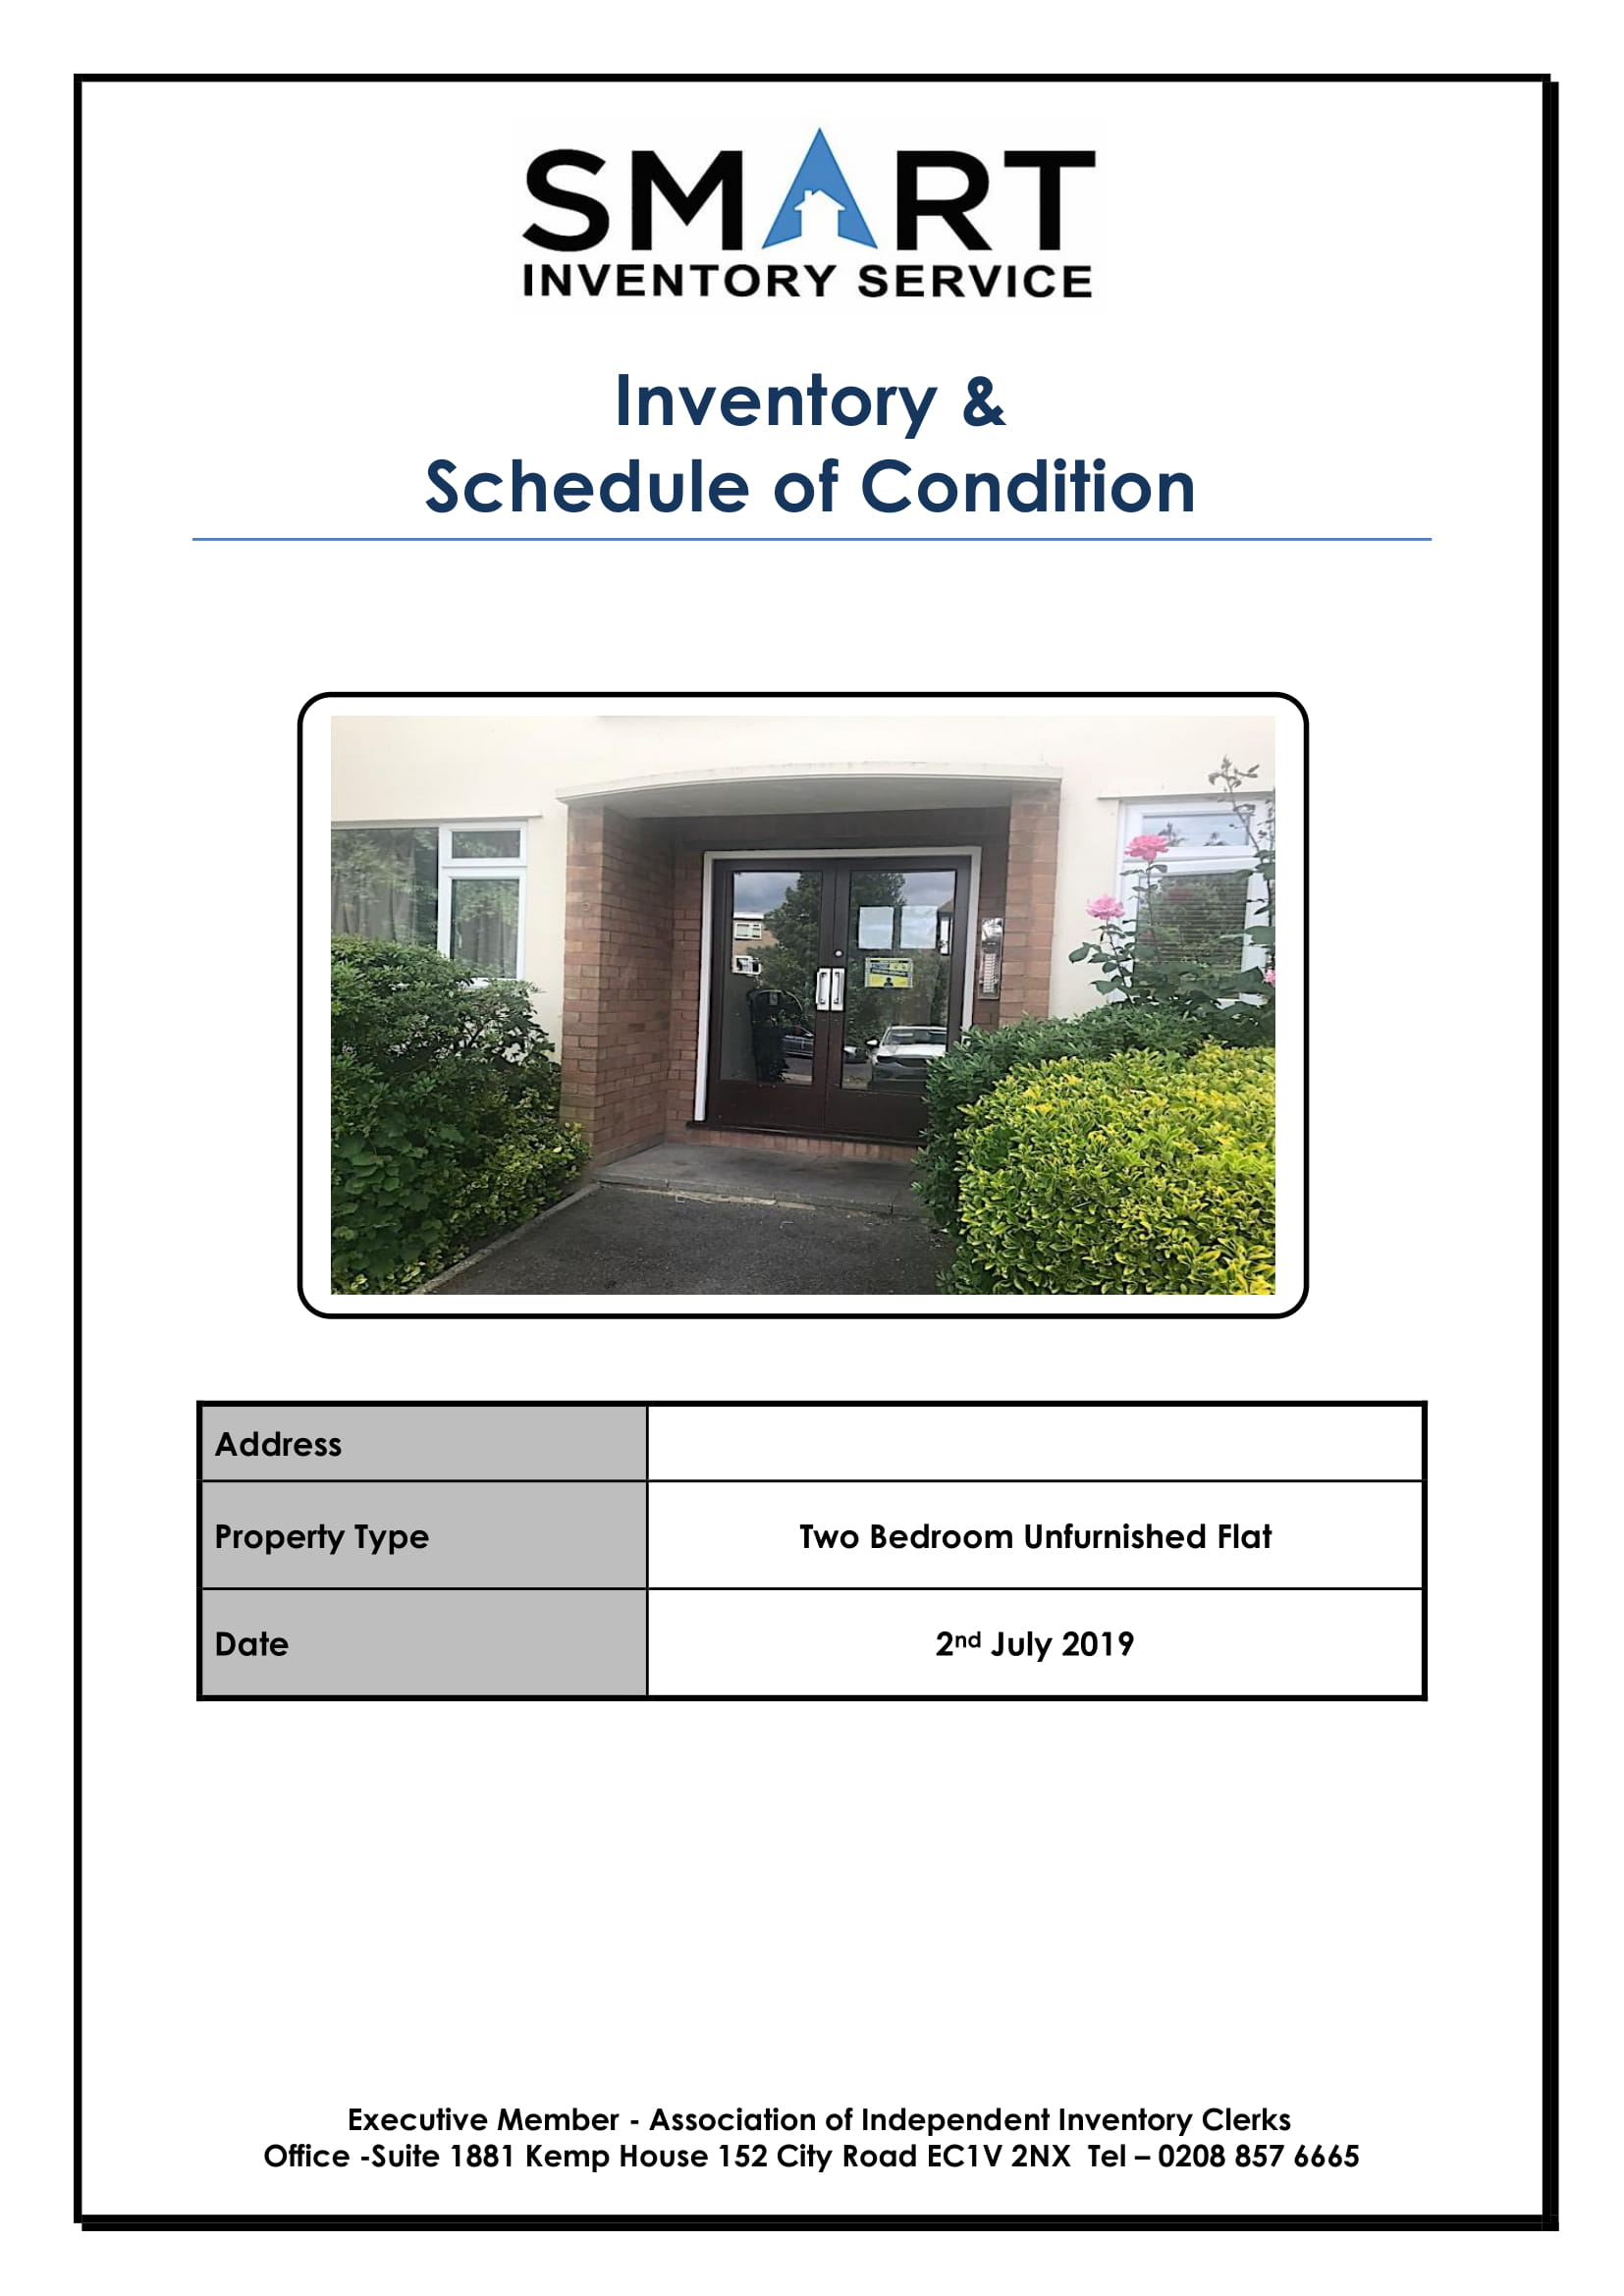 Smart Inventory Inventory Report Image